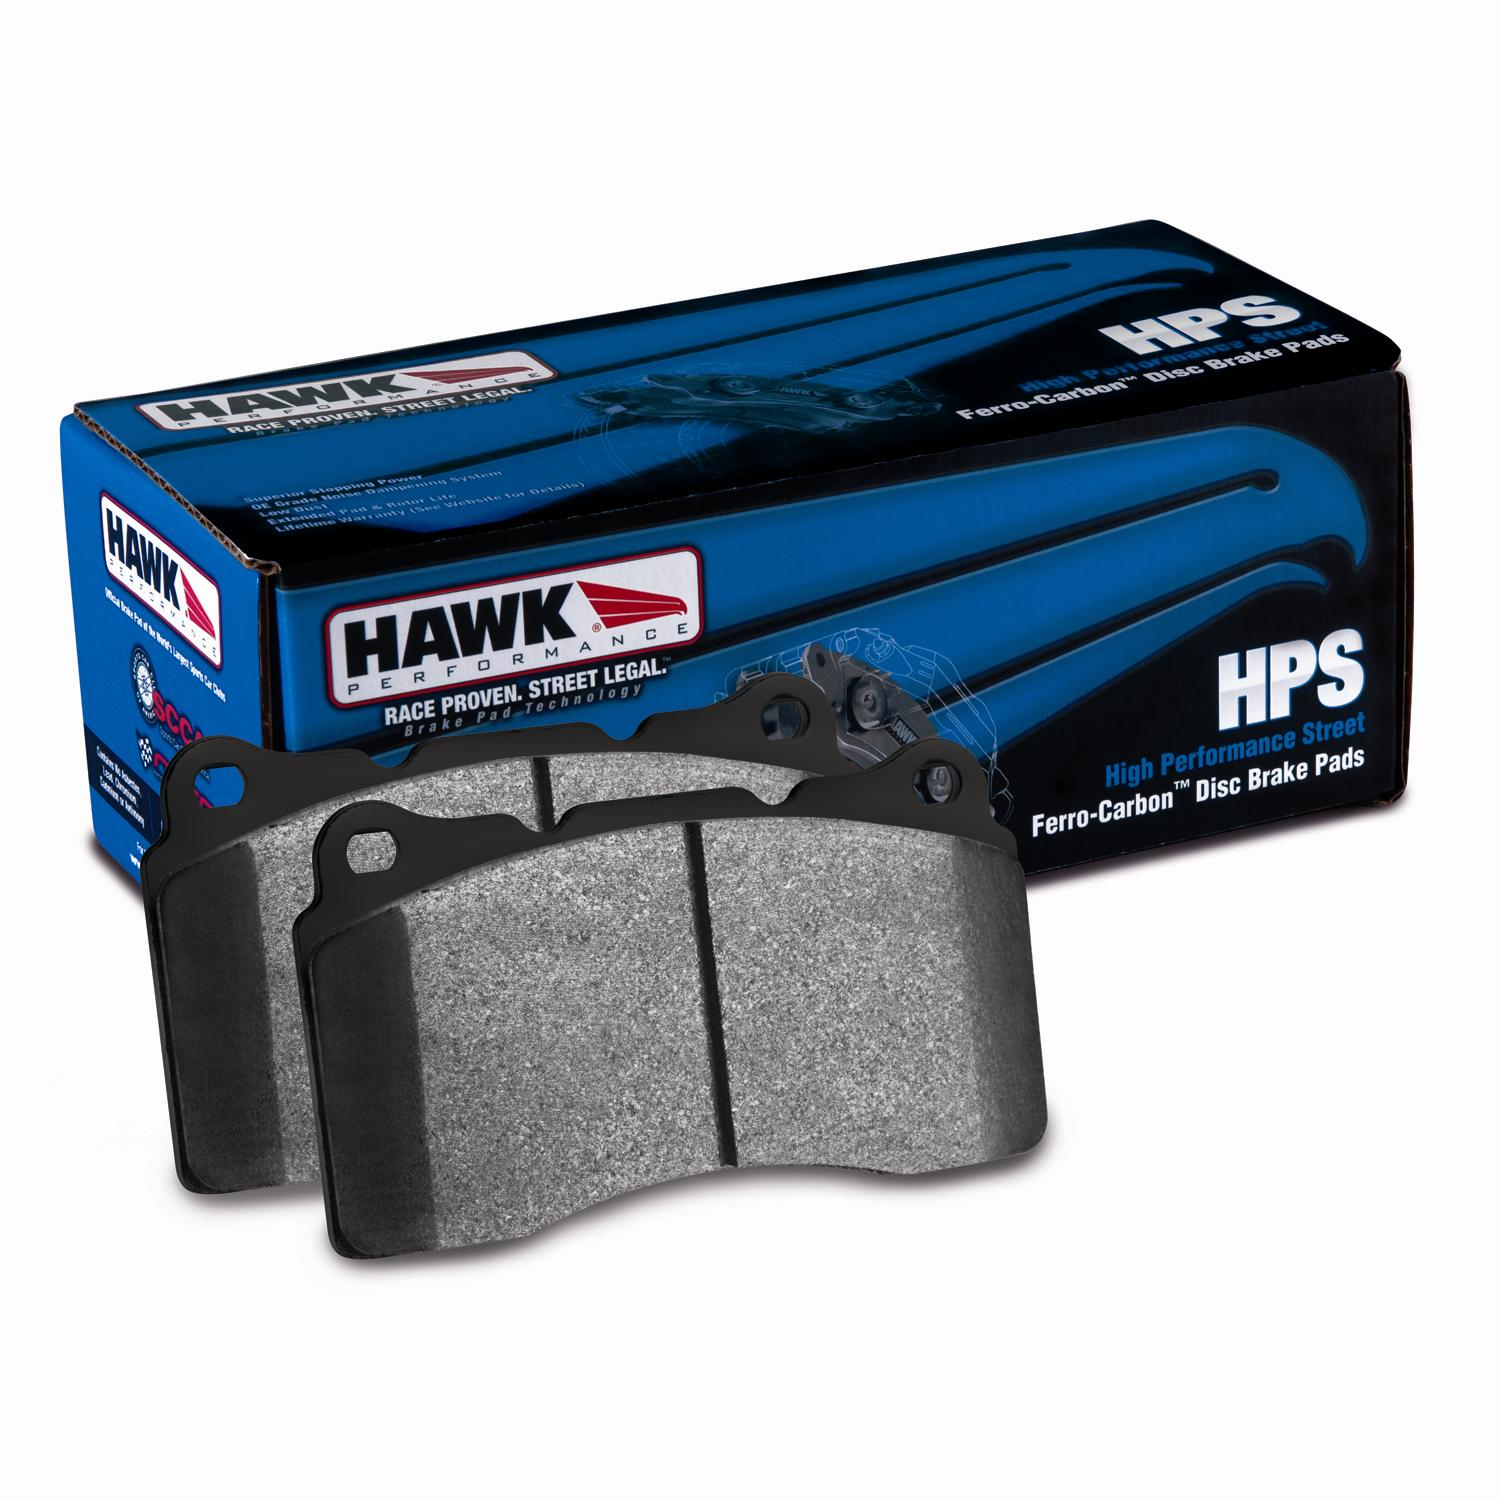 Hawk Solstice HPS Rear Brake Pads